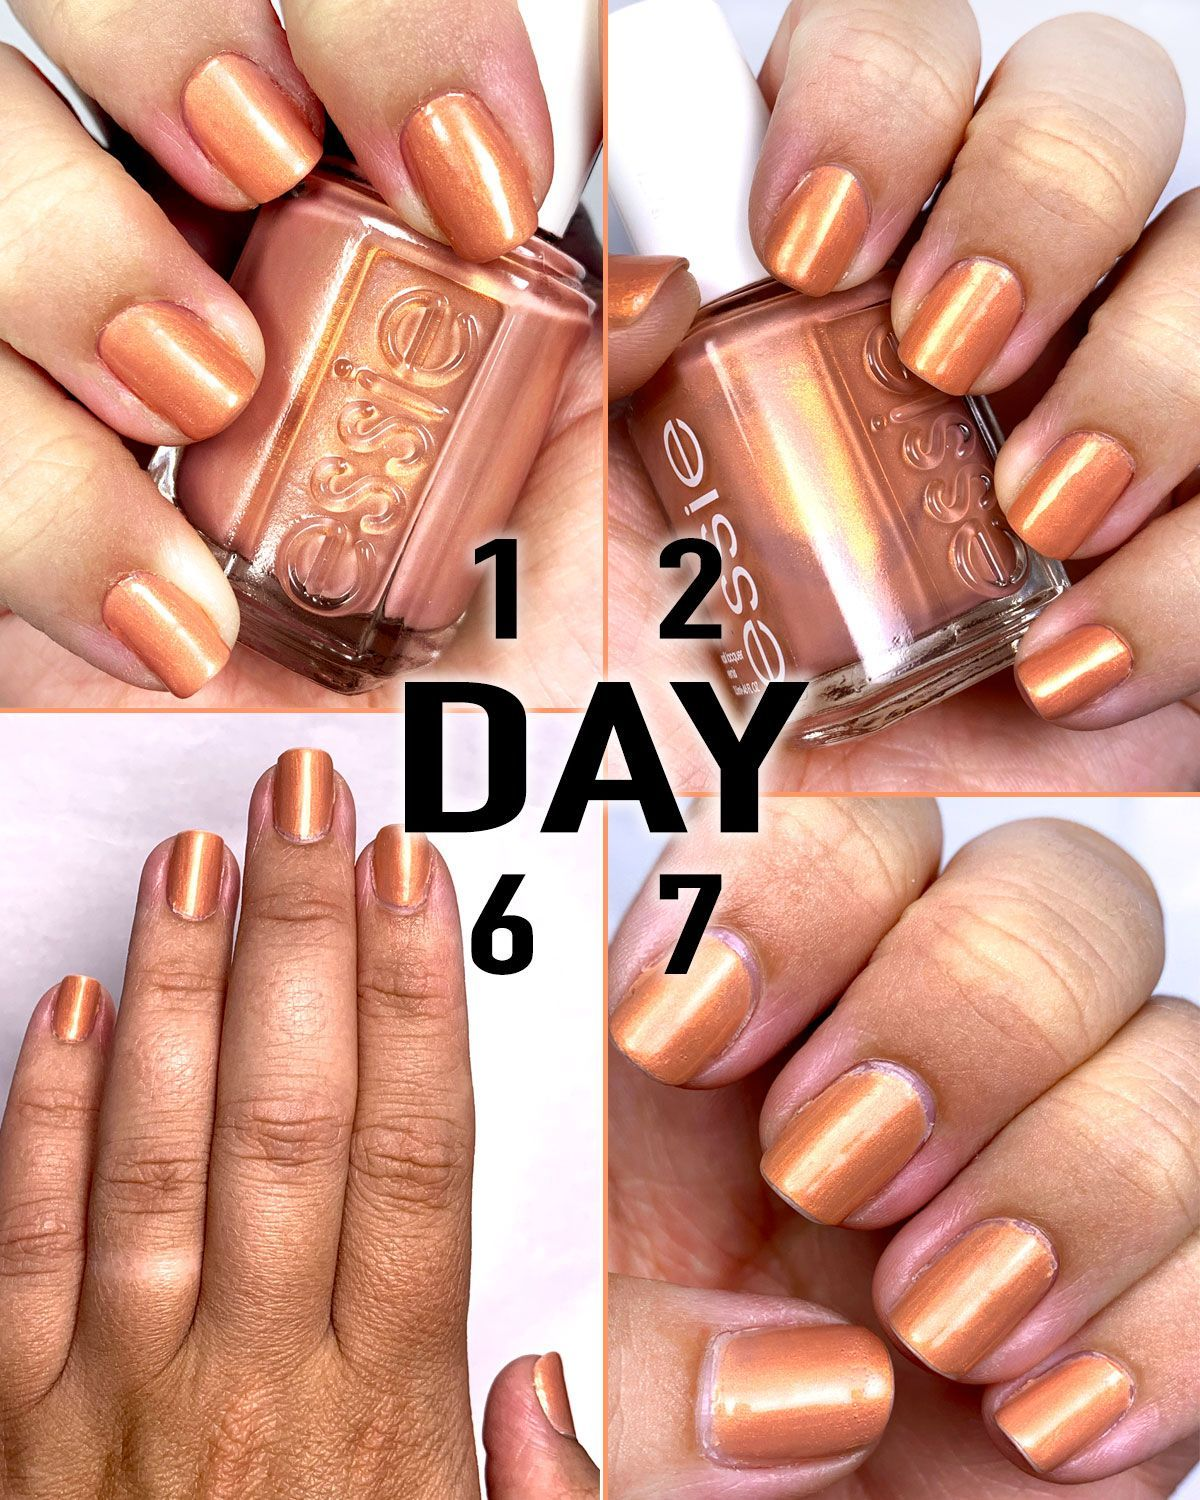 The Best At Home No Lamp Gel Nail Polish Lexis Rose The Best At Home No Lamp Gel Nail Polish Lexis Rose Athome Gel Gelnailpolish Lexis Nail Nail